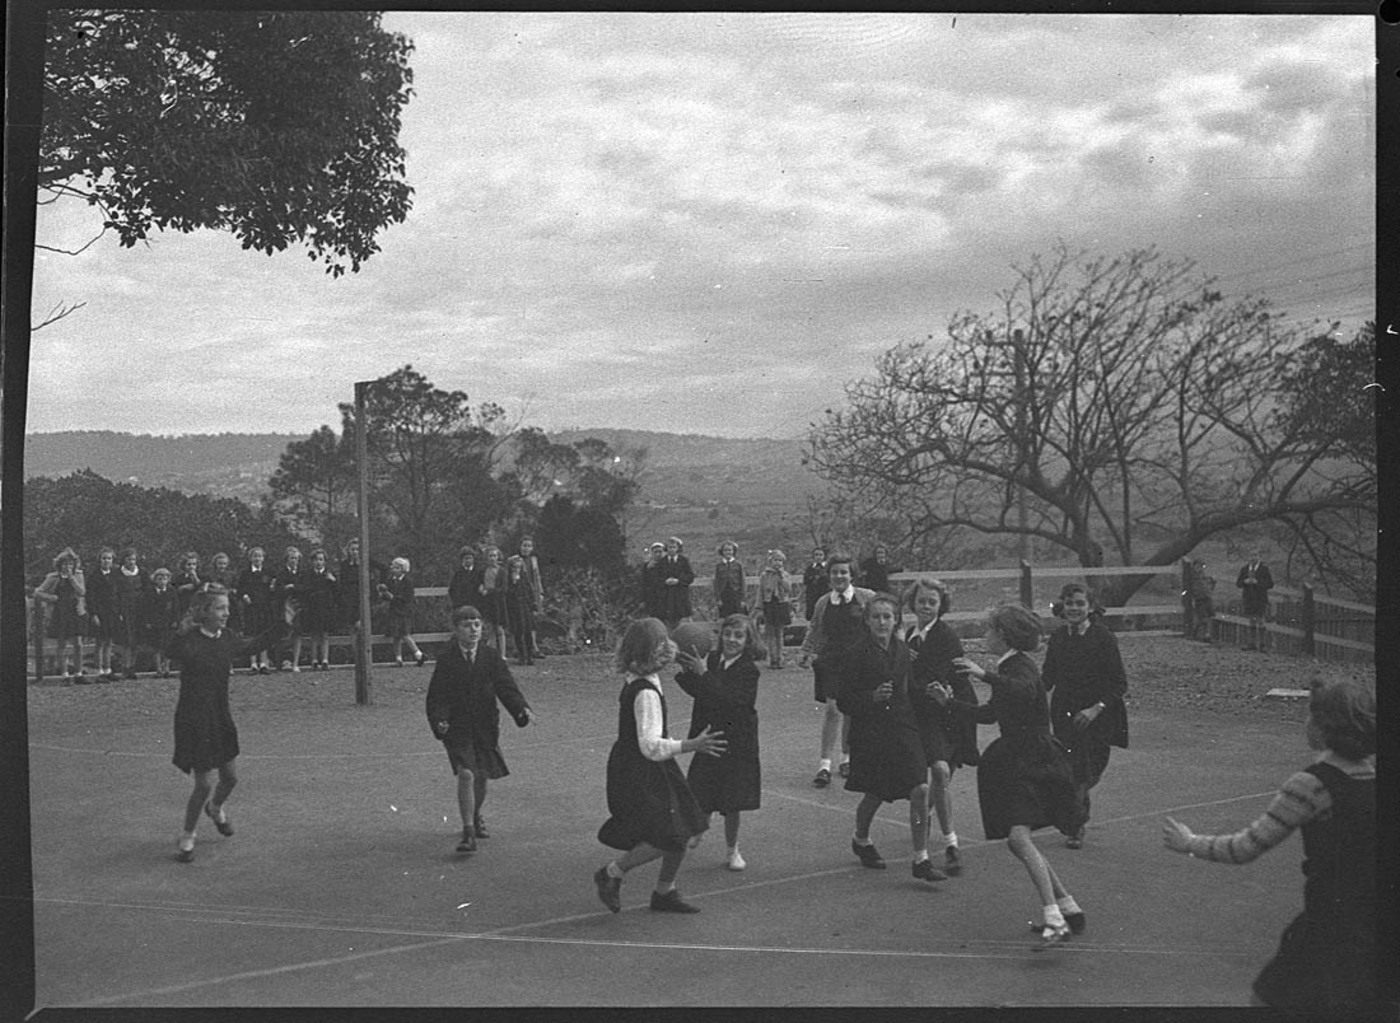 improvements.jpg English: Merewether School playground improvements Date 8/7/1953 Source http://www.acmssearch.sl.nsw.gov.au/search/itemDetailPaged